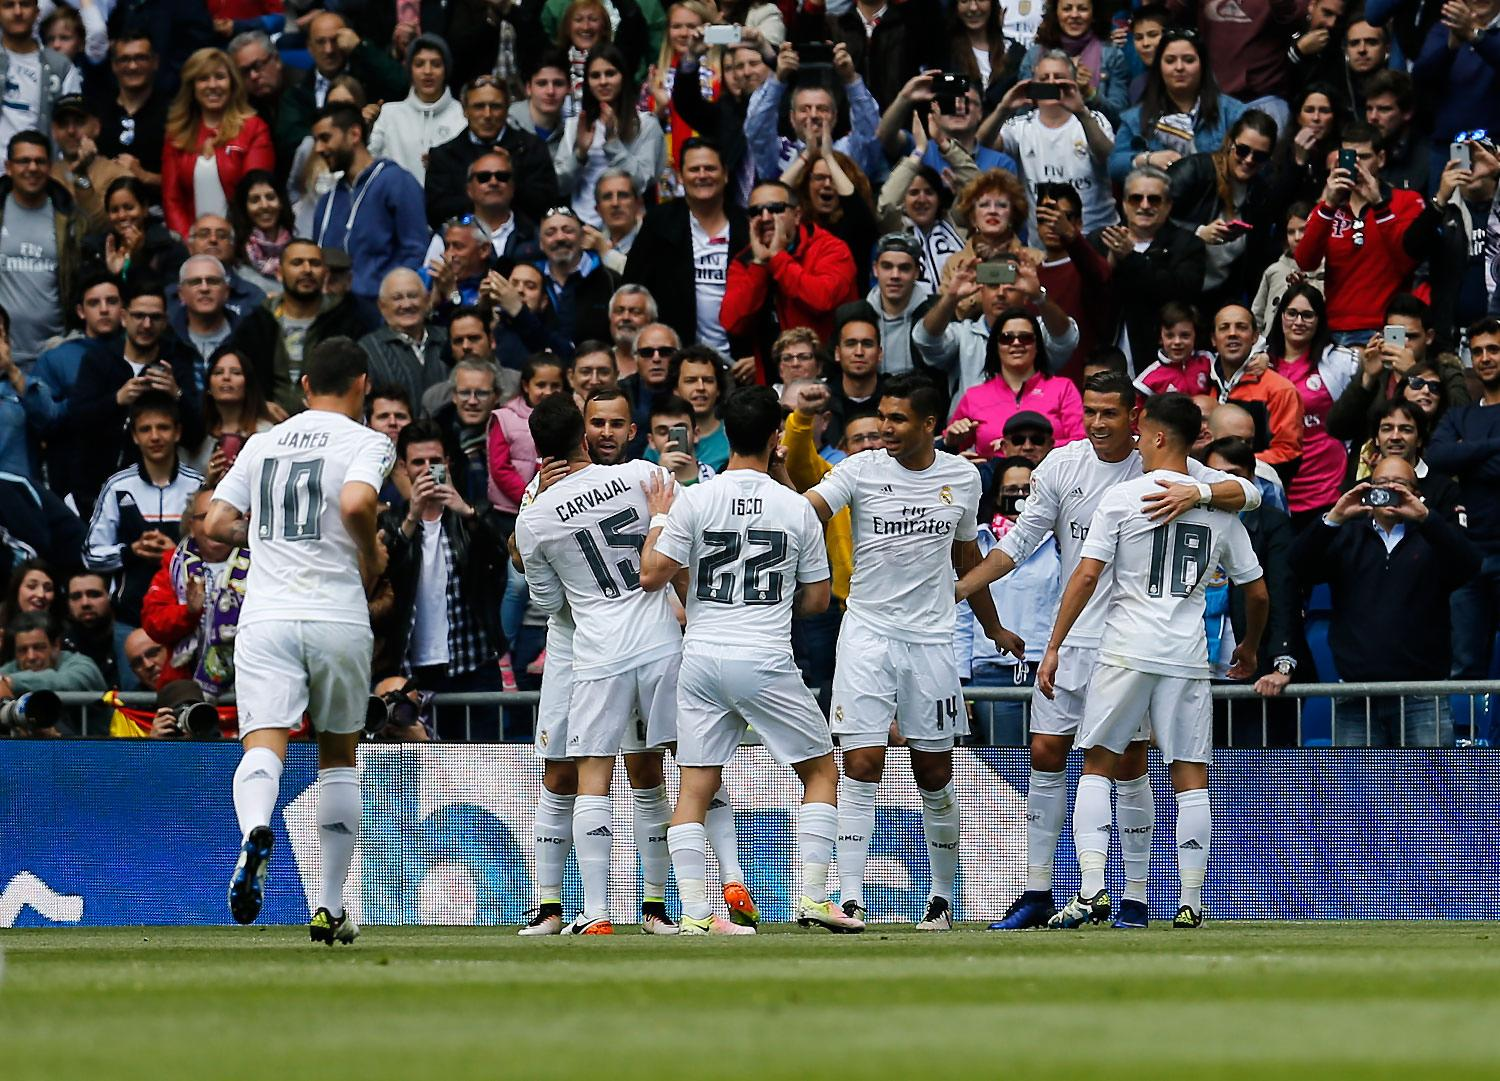 Real Madrid - Real Madrid - Eibar - 09-04-2016